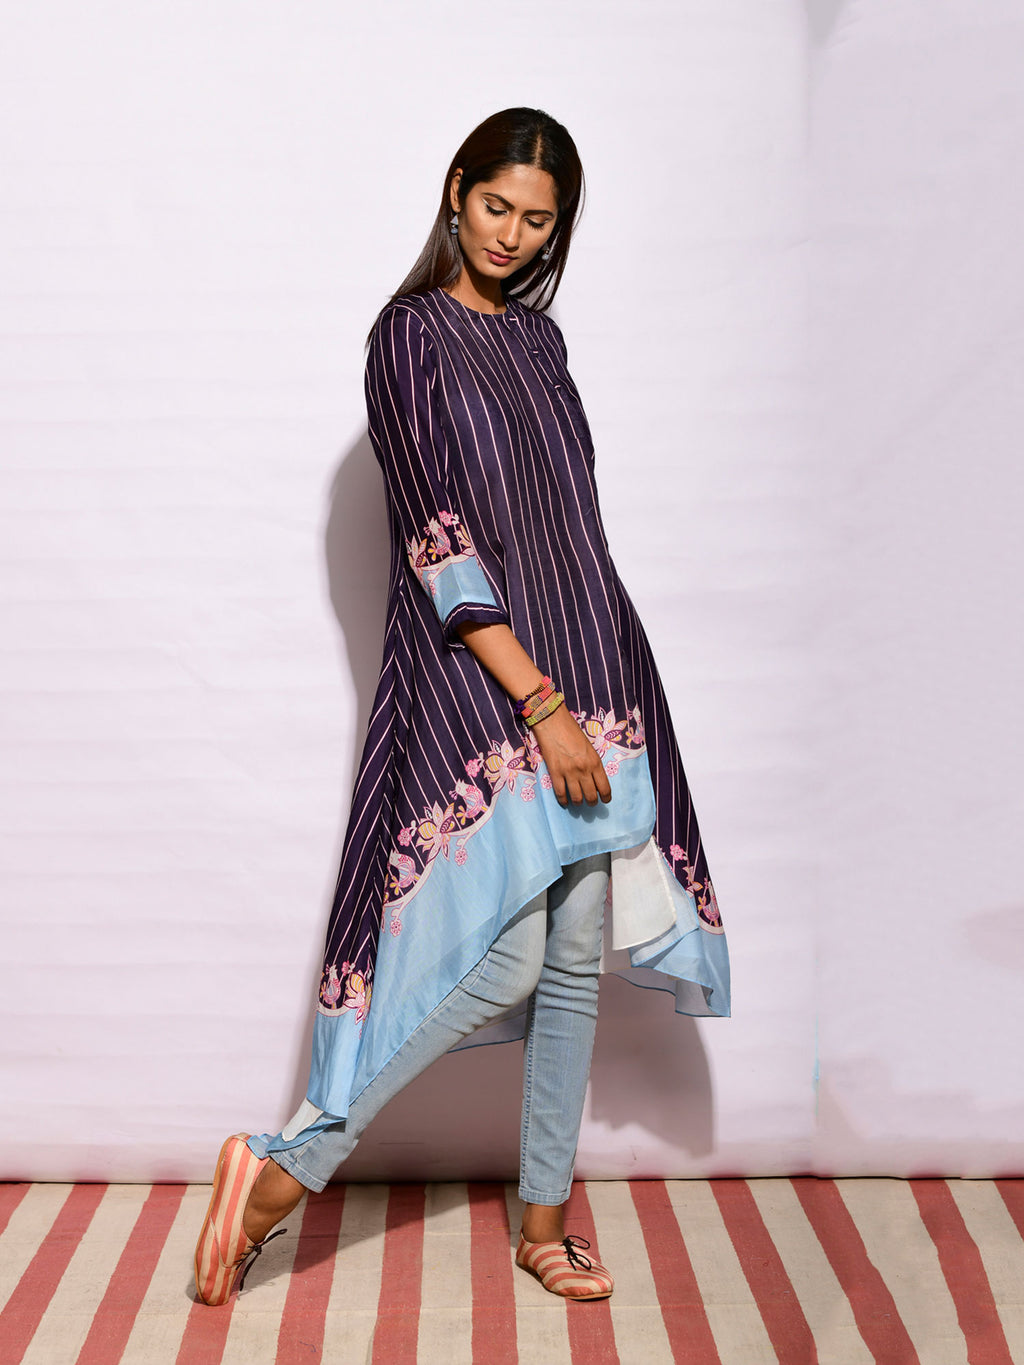 tunics, kurtas, style, fashion, indiancontemporaryfashion, indianapparel, womenswear, swativijaivargie, PRINTEDTUNICS, KURTIS, kurtas for women,